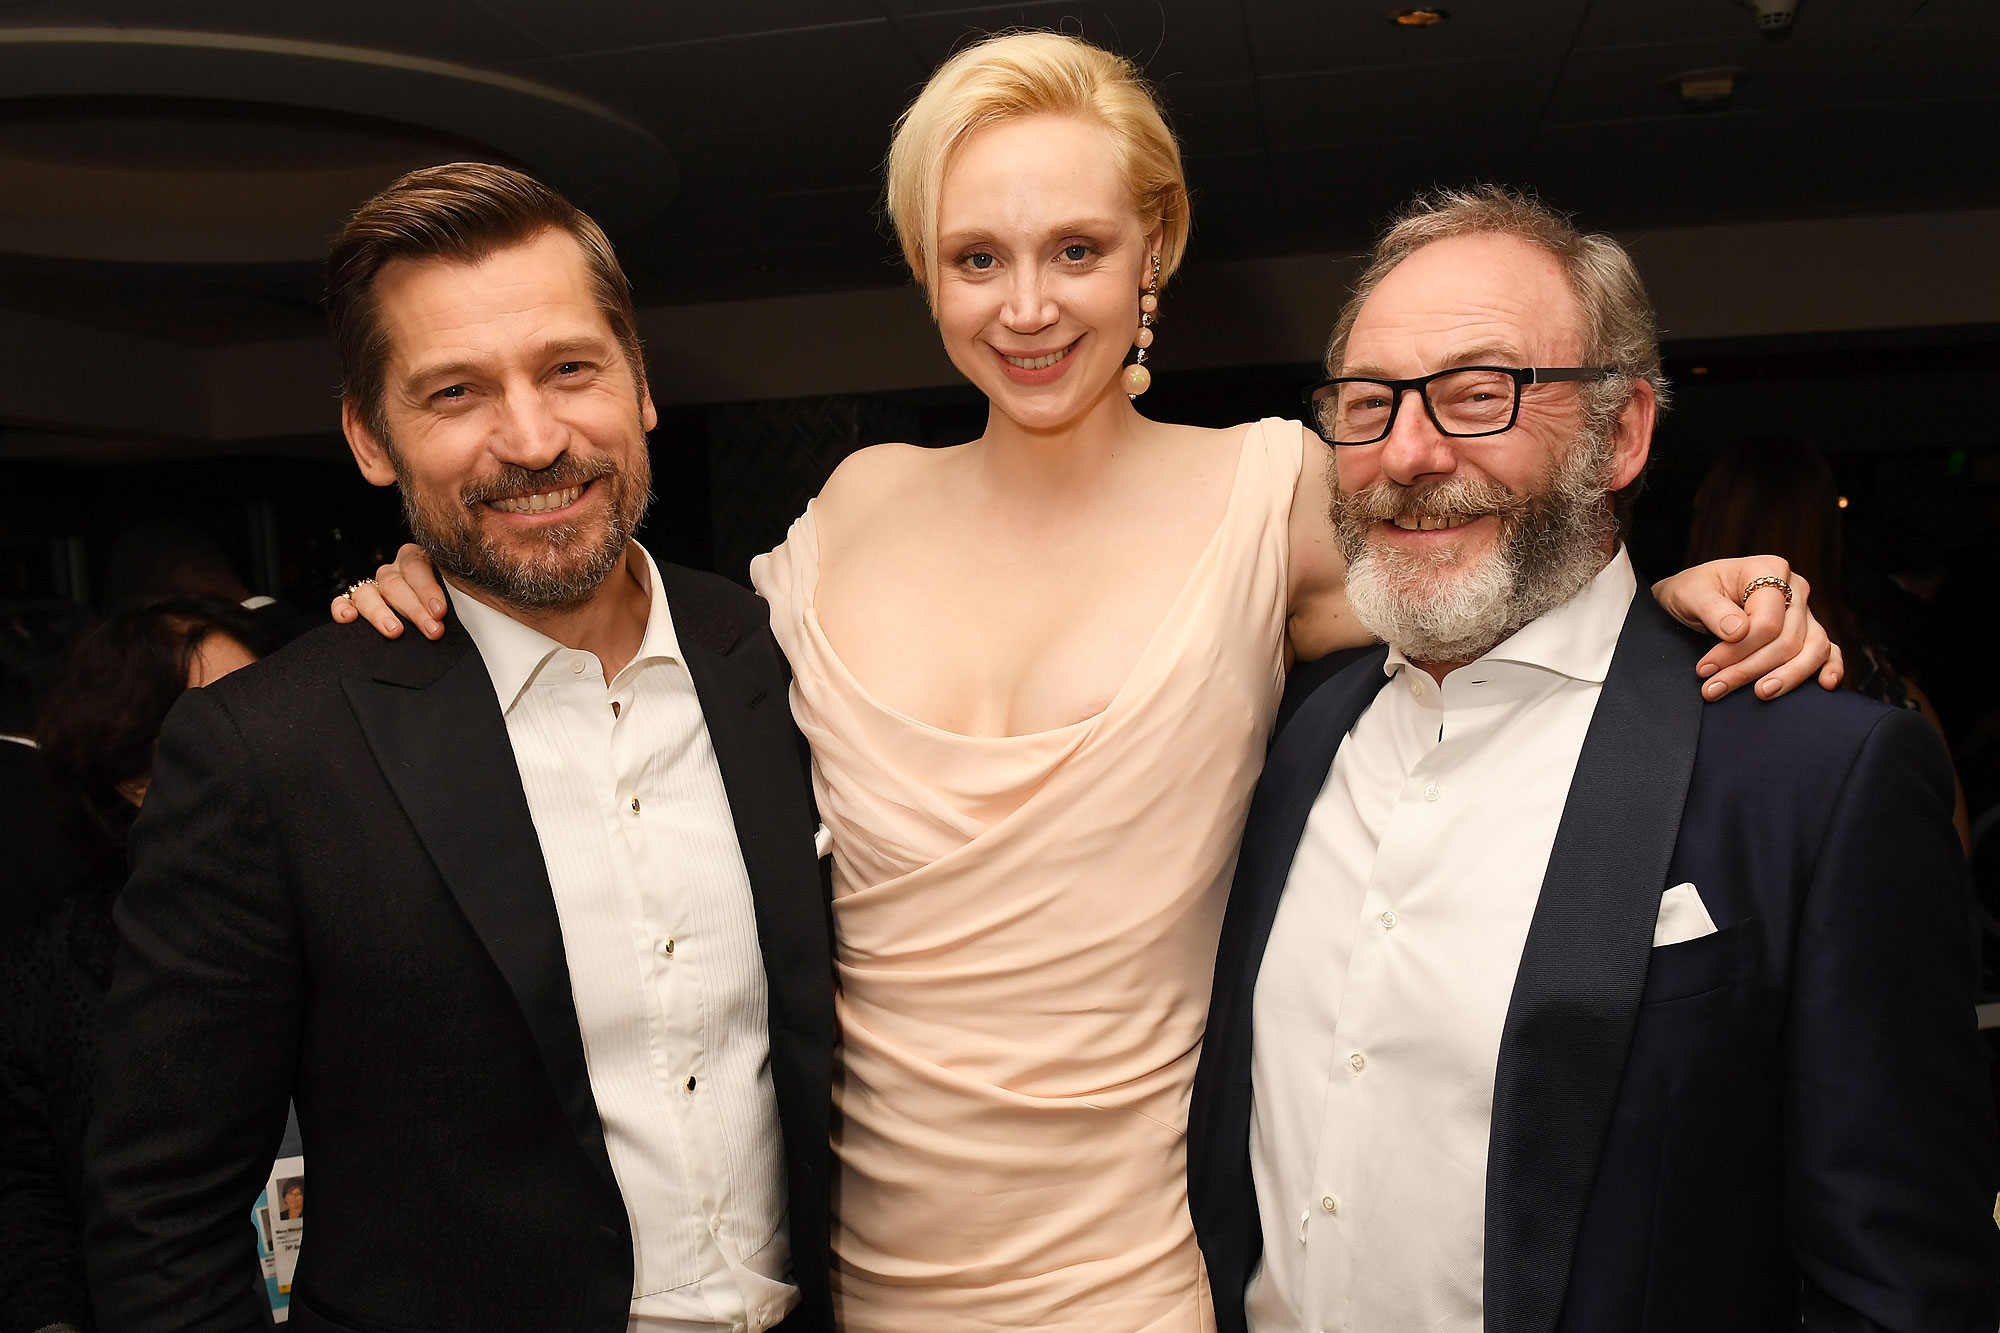 HBO's Official 2017 Golden Globe Awards After Party - Inside